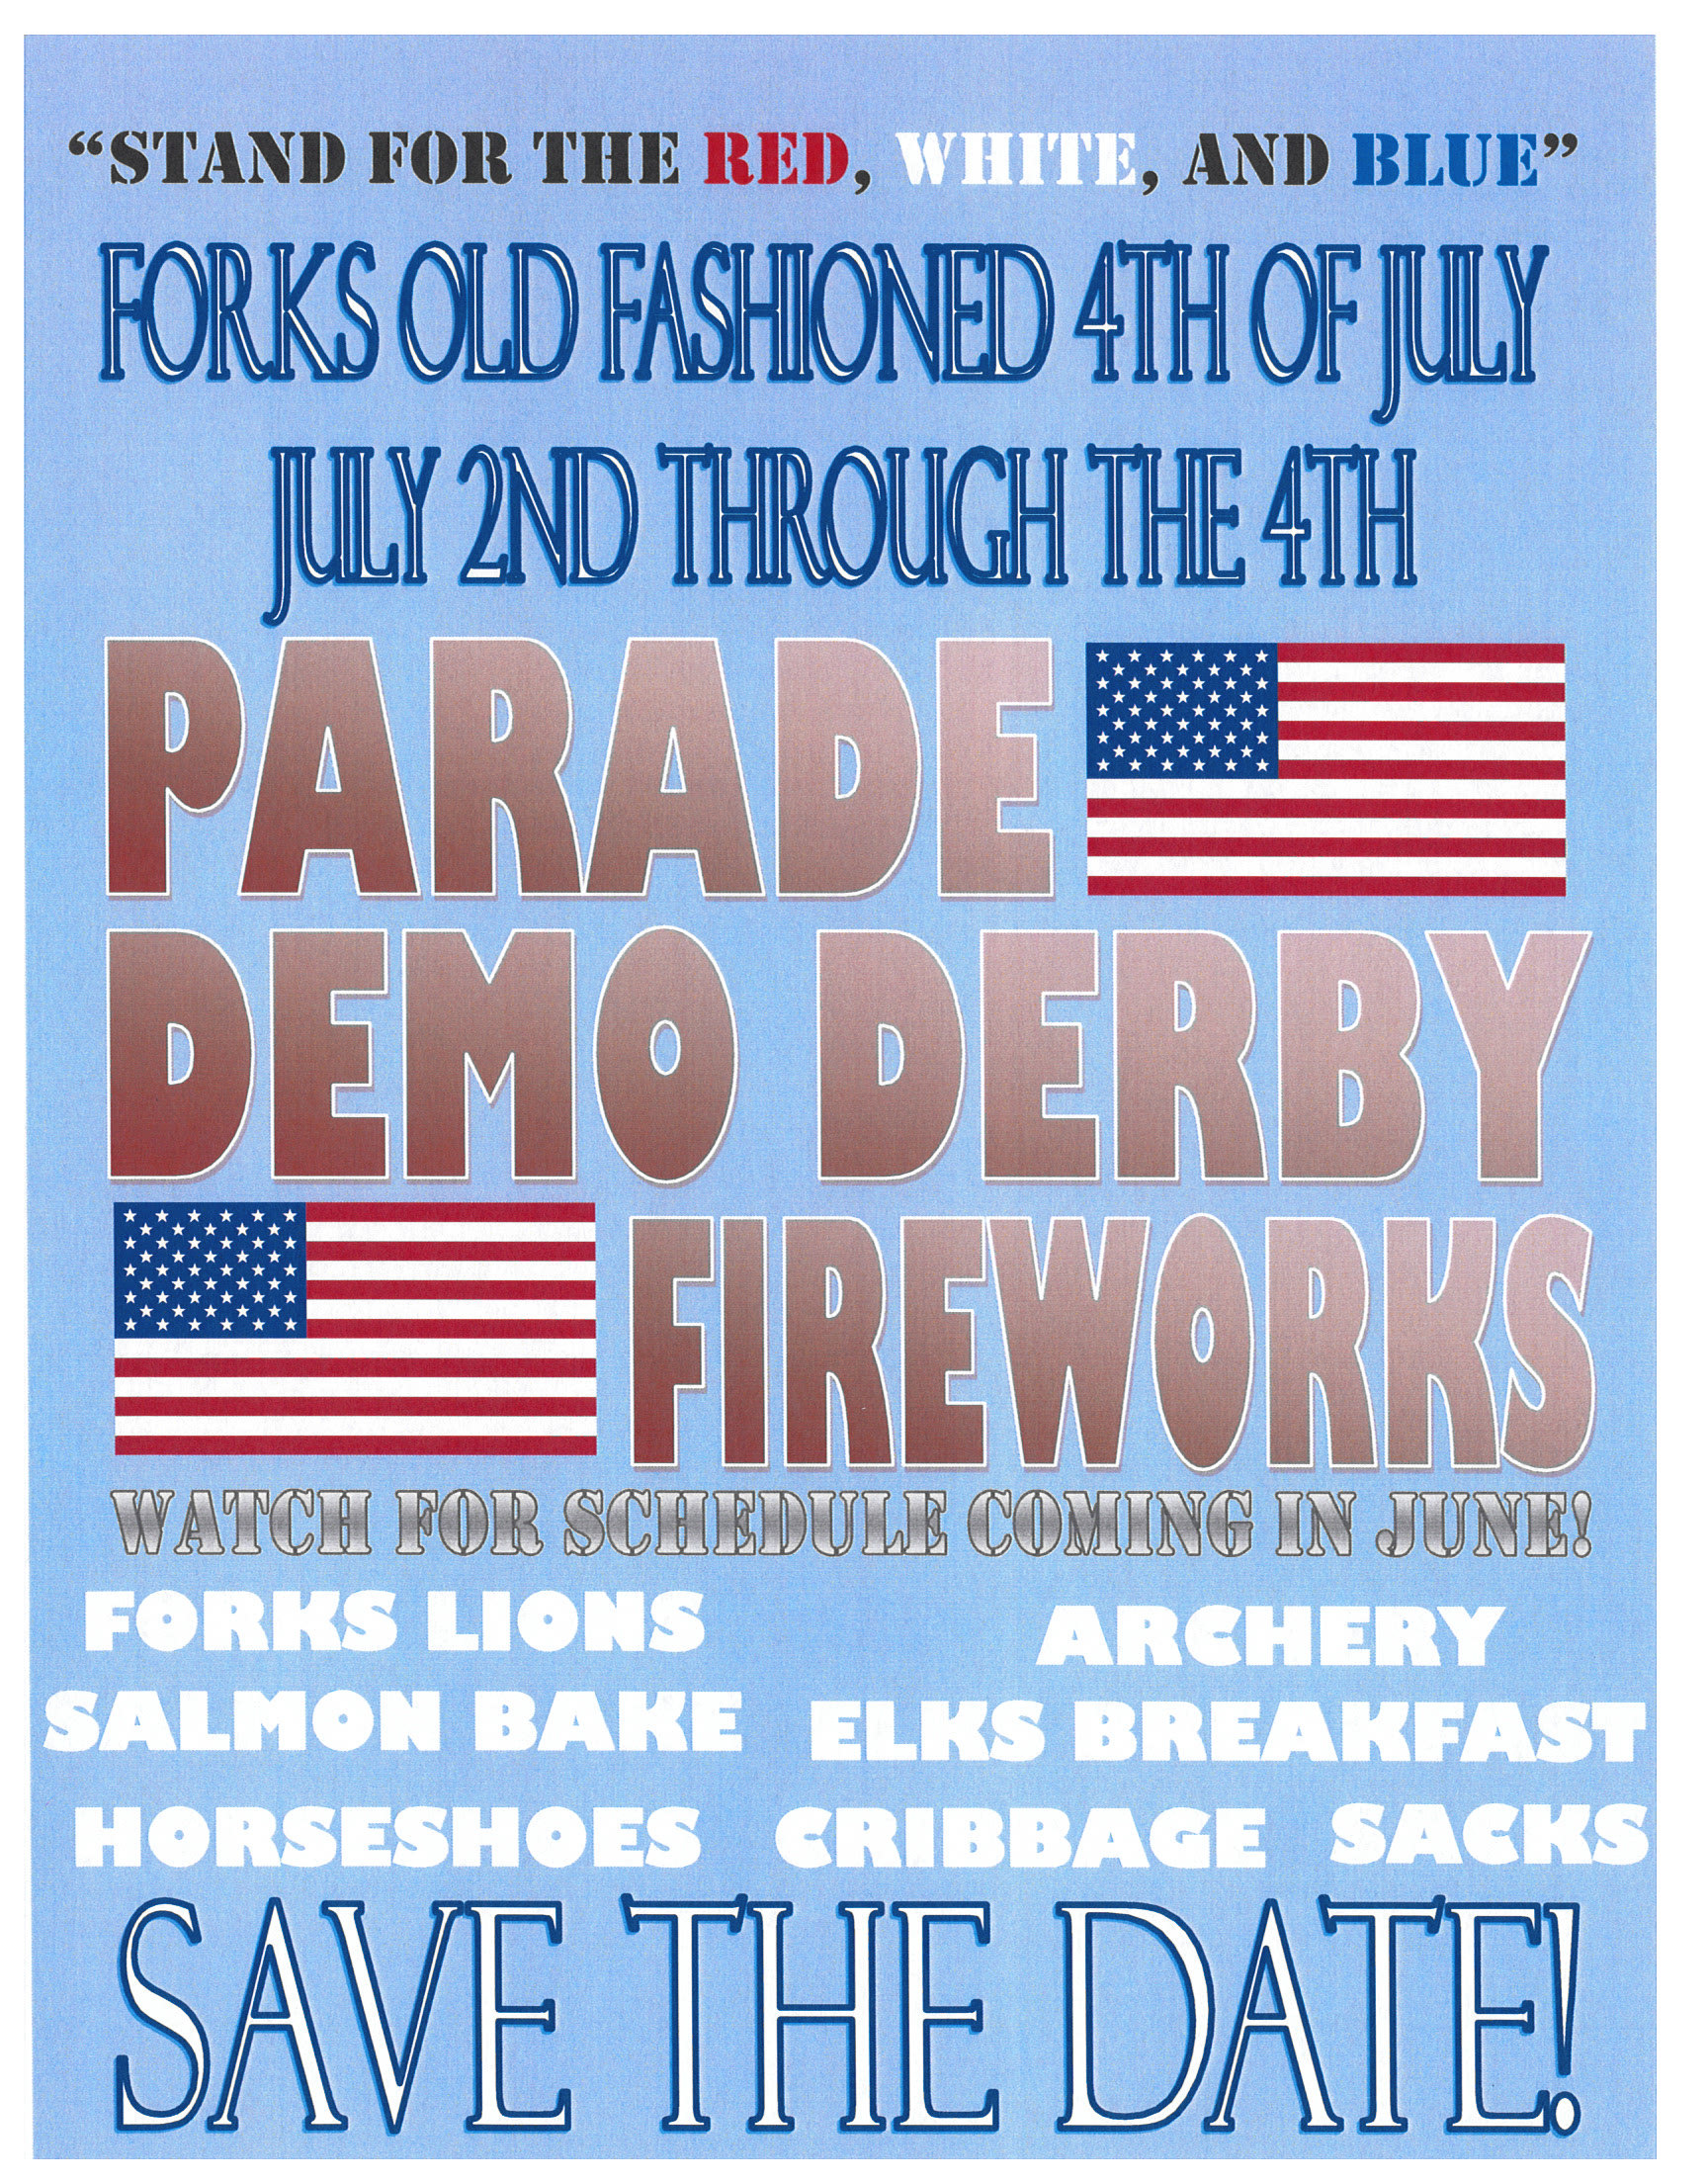 Forks Old Fashioned 4th of July @ Forks, Washington